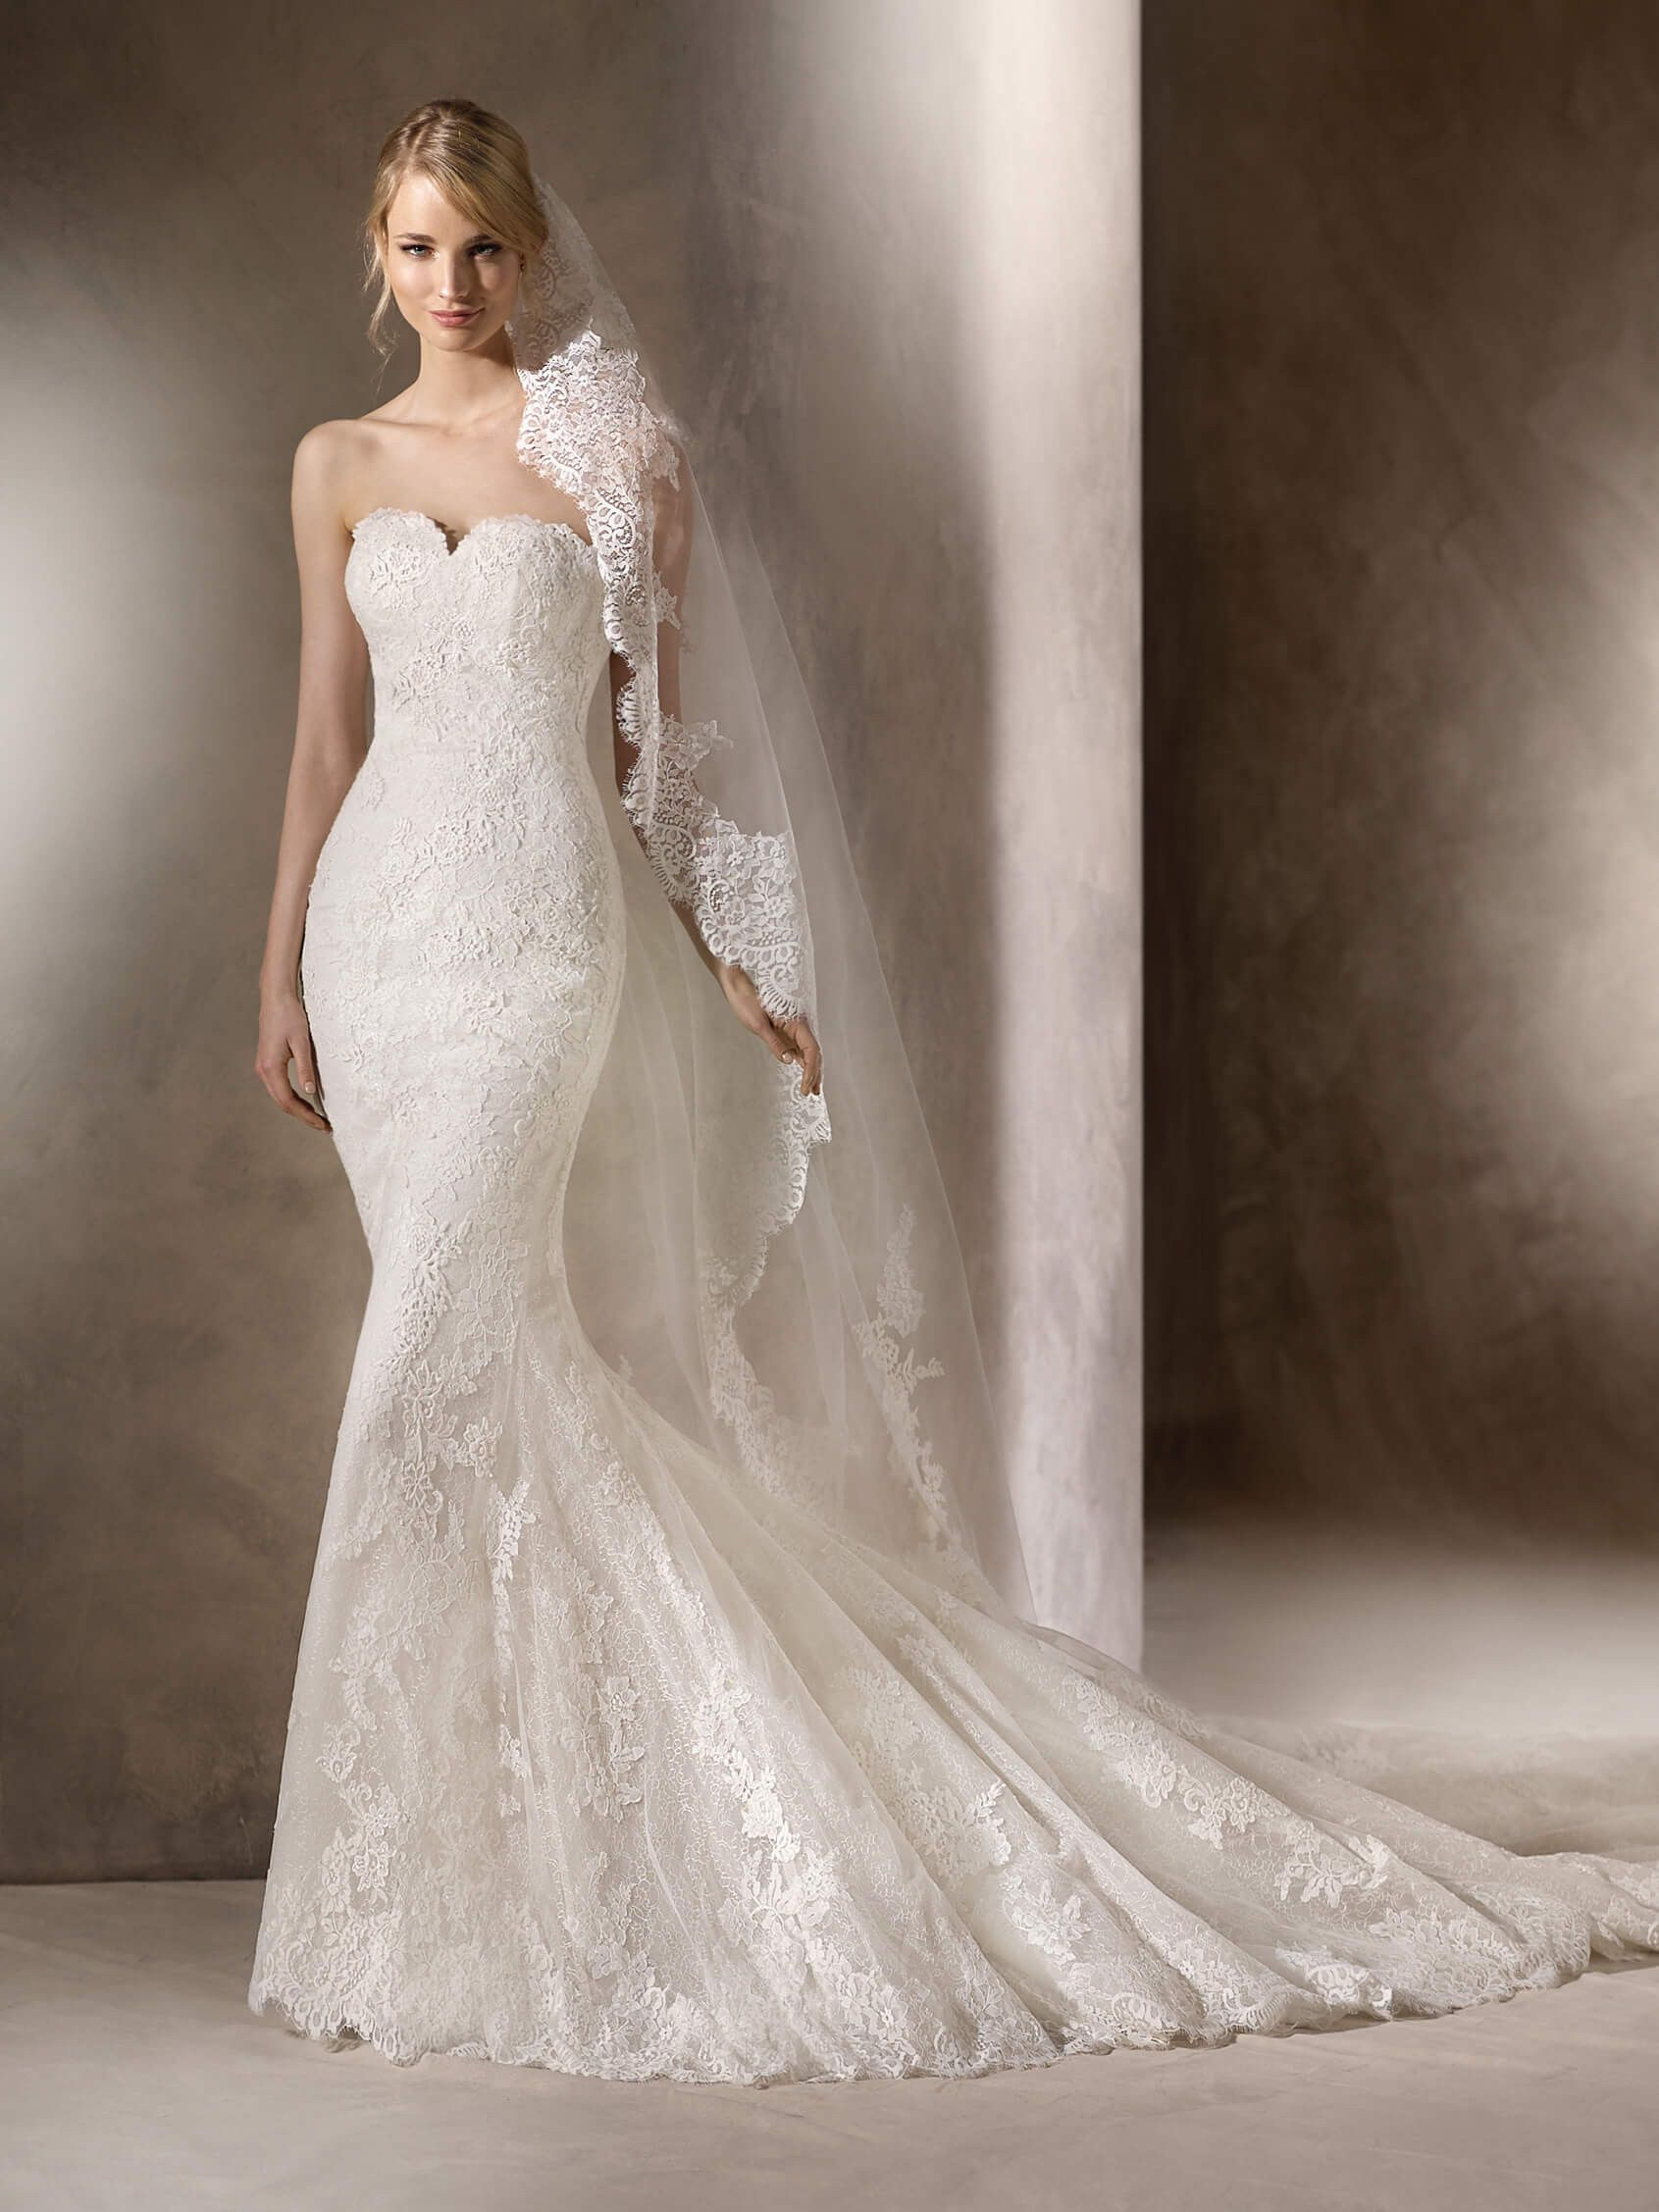 990e11650185 HENO is a magnificent, mermaid wedding dress in tulle, embroidered tulle,  lace, guipure and gemstone embroidery, with a sweetheart neckline